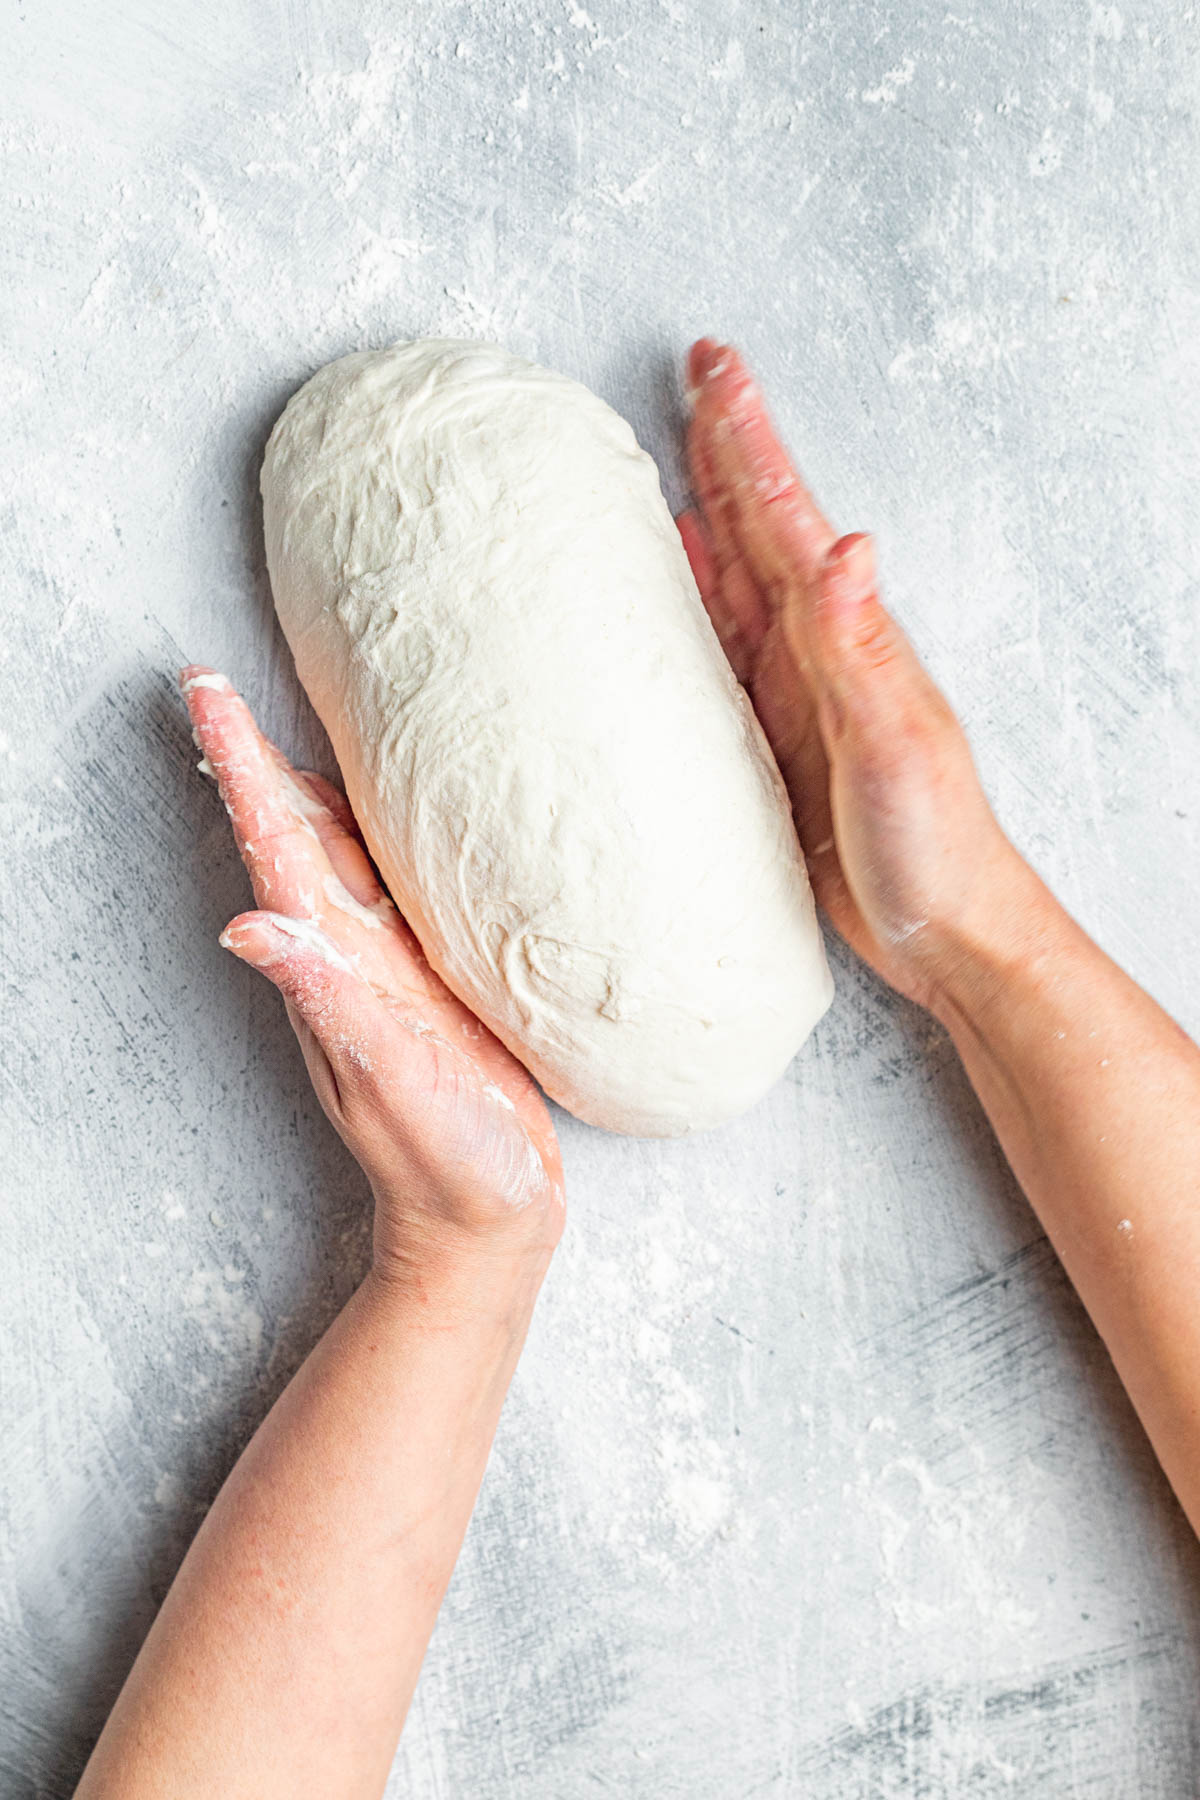 Woman's hands shaping dough into a log.